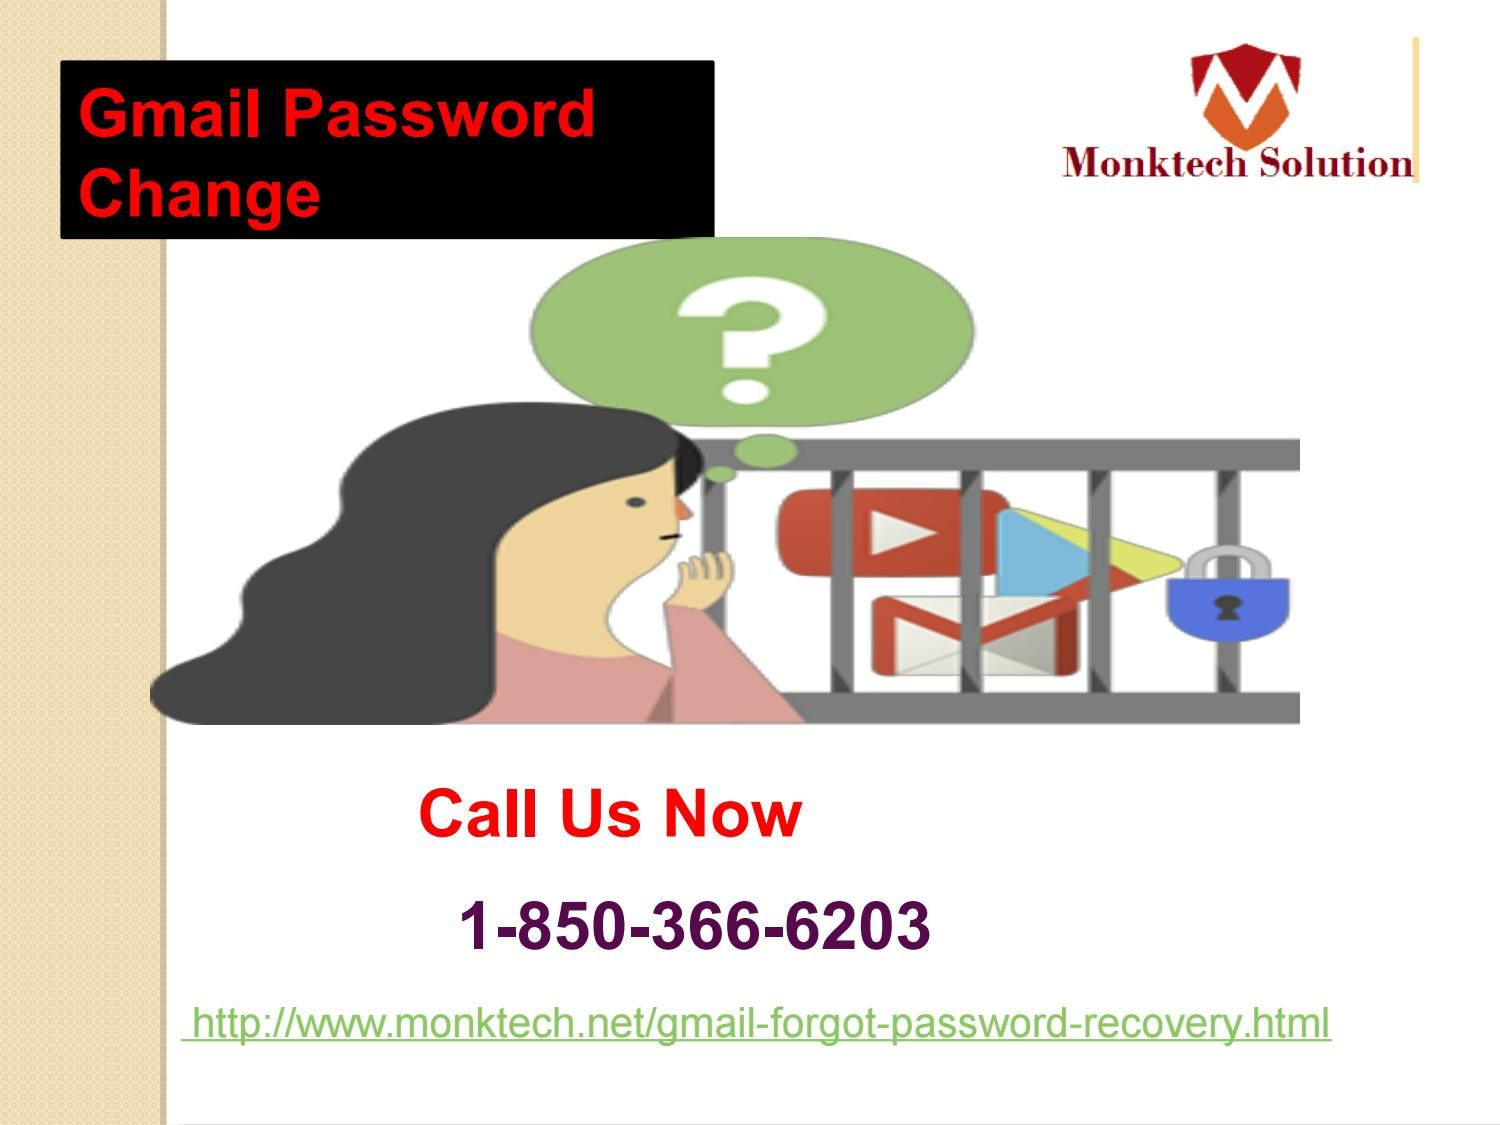 Have your Gmail Password Changed 1-850-366-6203 without your